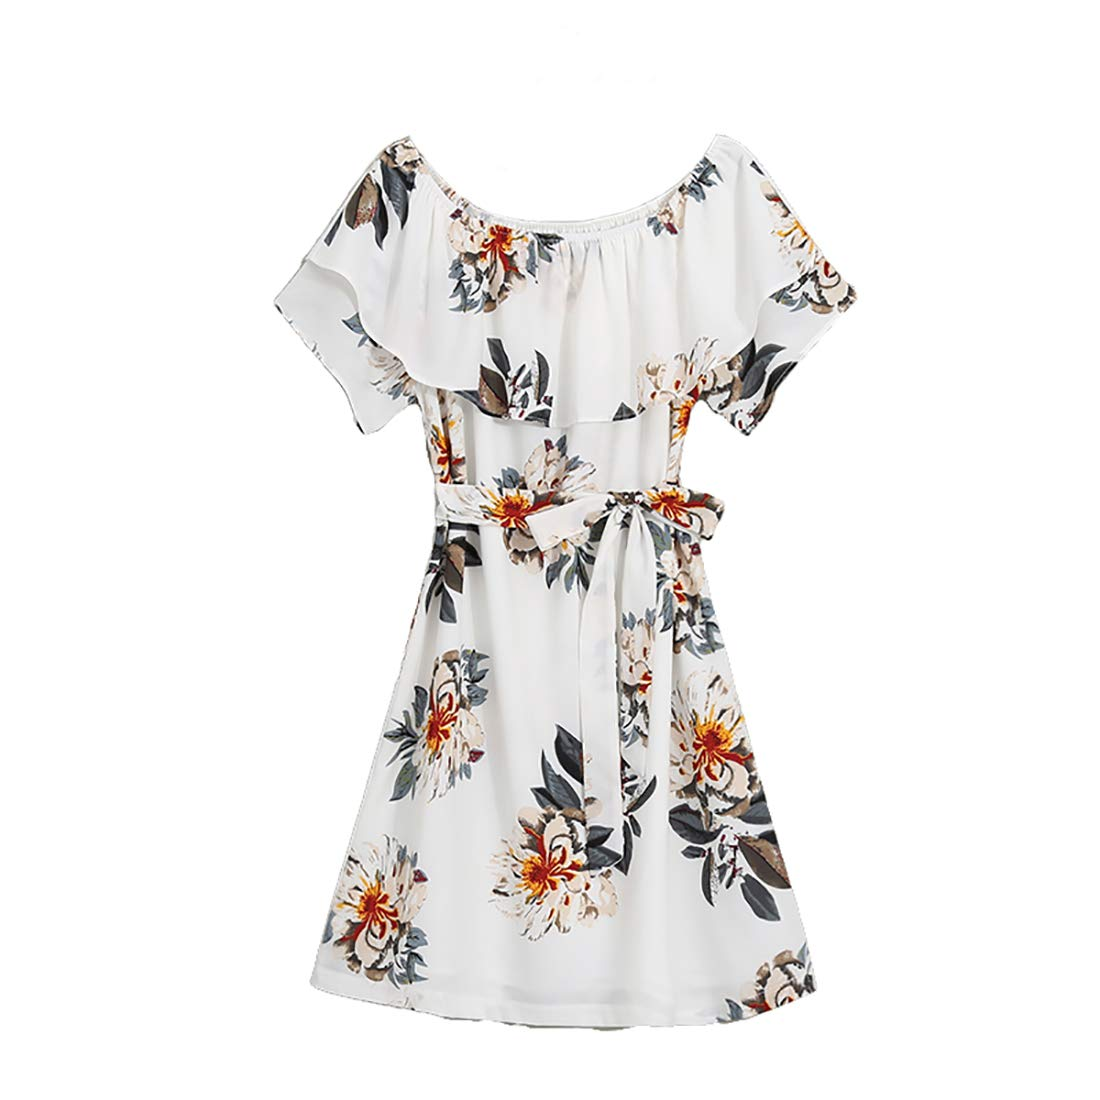 PopReal Mommy and Me Floral Printed Dresses Chiffon Bowknot Ruffles Short Sleeve Beach Family Matching Outfits